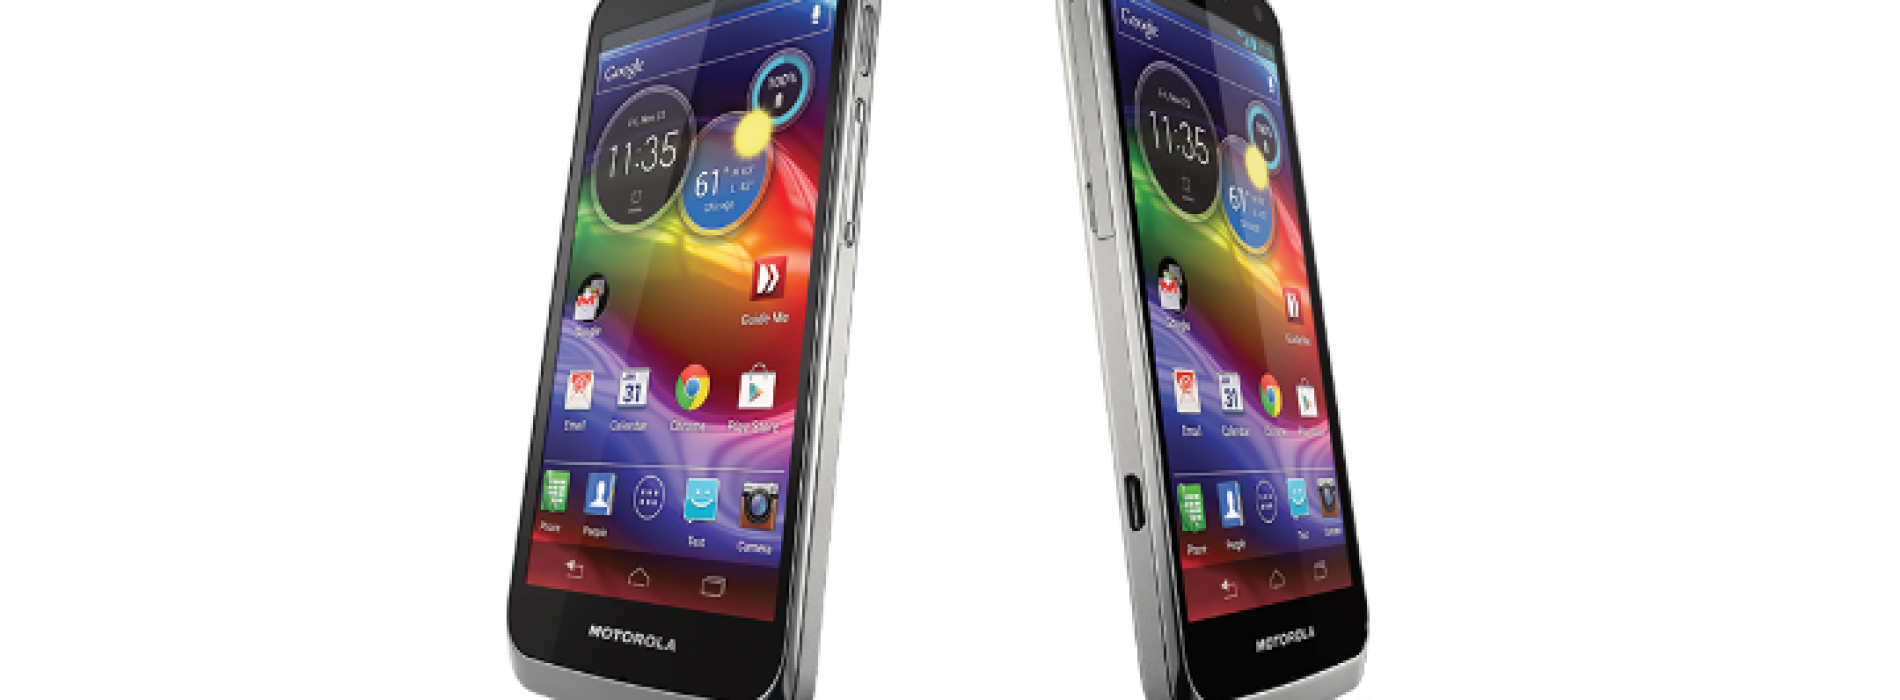 U.S. Cellular adds Motorola Electrify M to 4G LTE roster